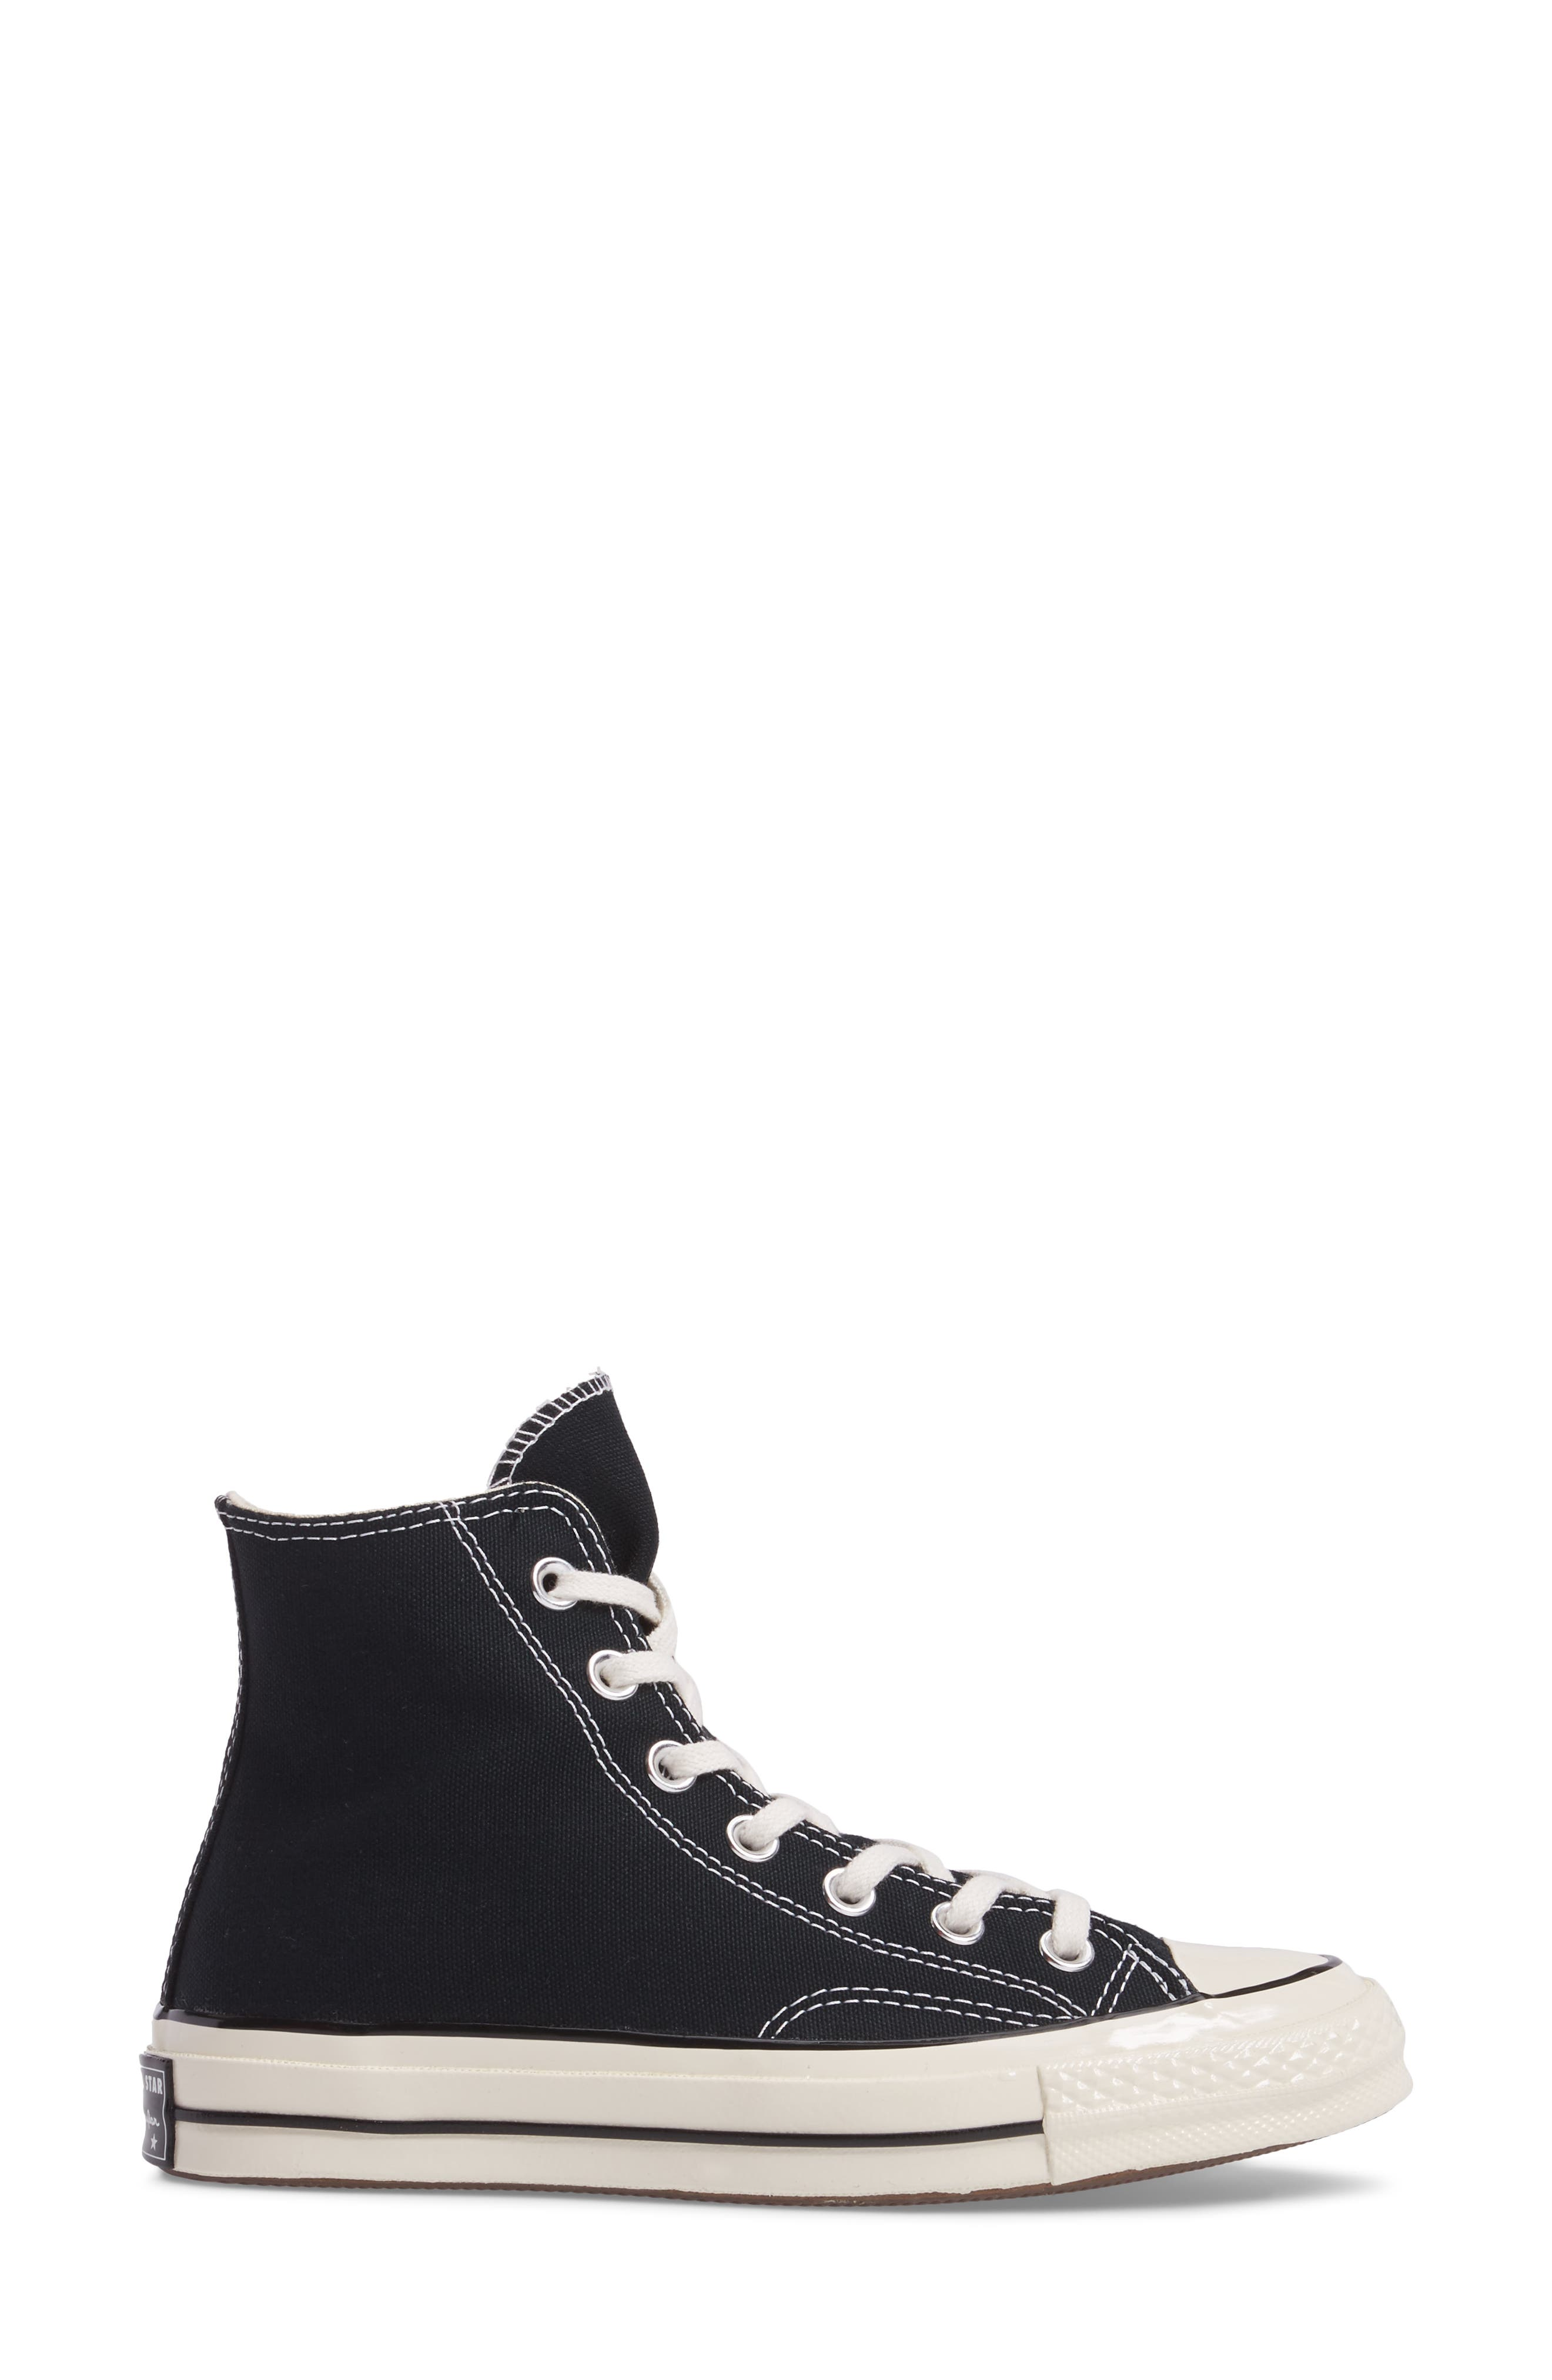 Chuck Taylor<sup>®</sup> All Star<sup>®</sup> '70 High Top Sneaker,                             Alternate thumbnail 3, color,                             001